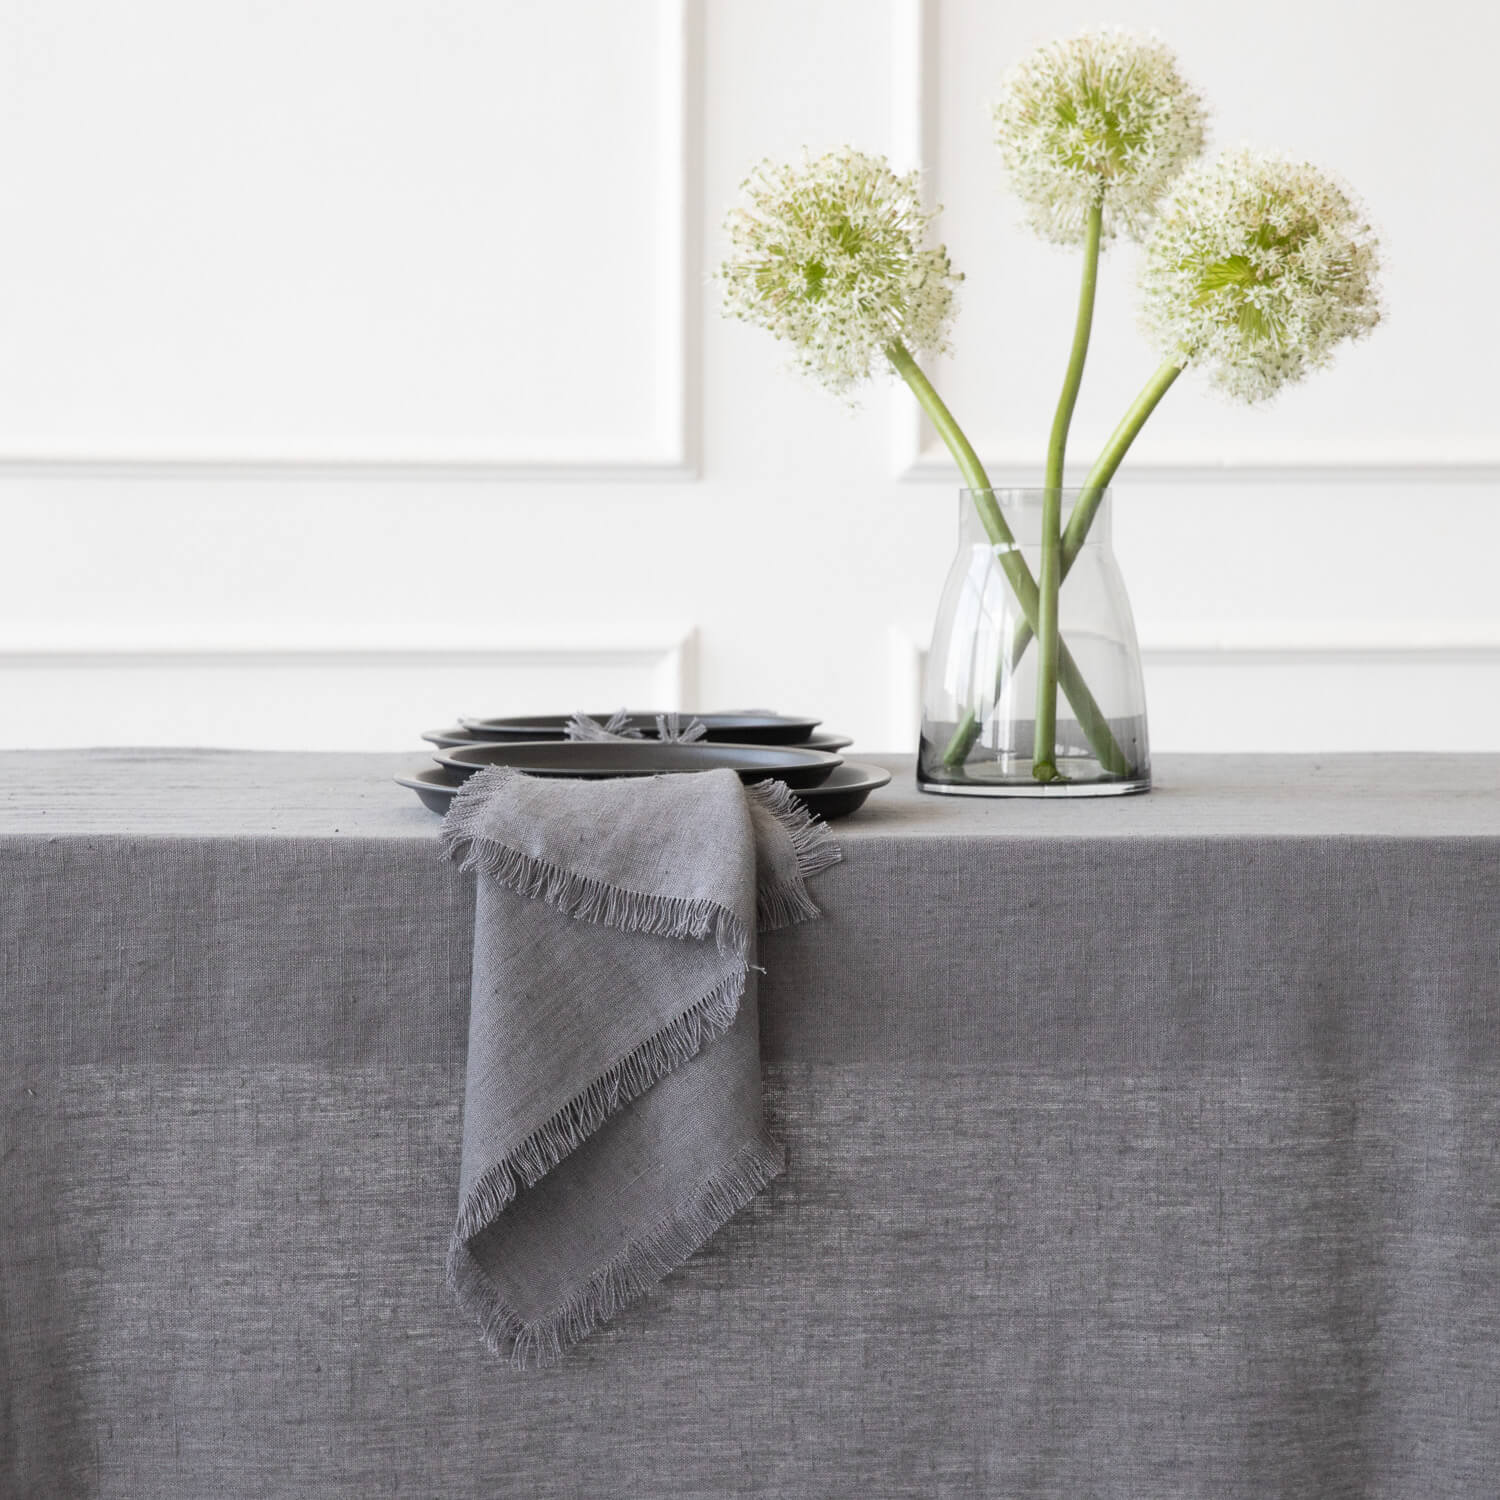 Terra-Fringe_Charcoal_Tablecloth-Napkins-6_1500x1500-26